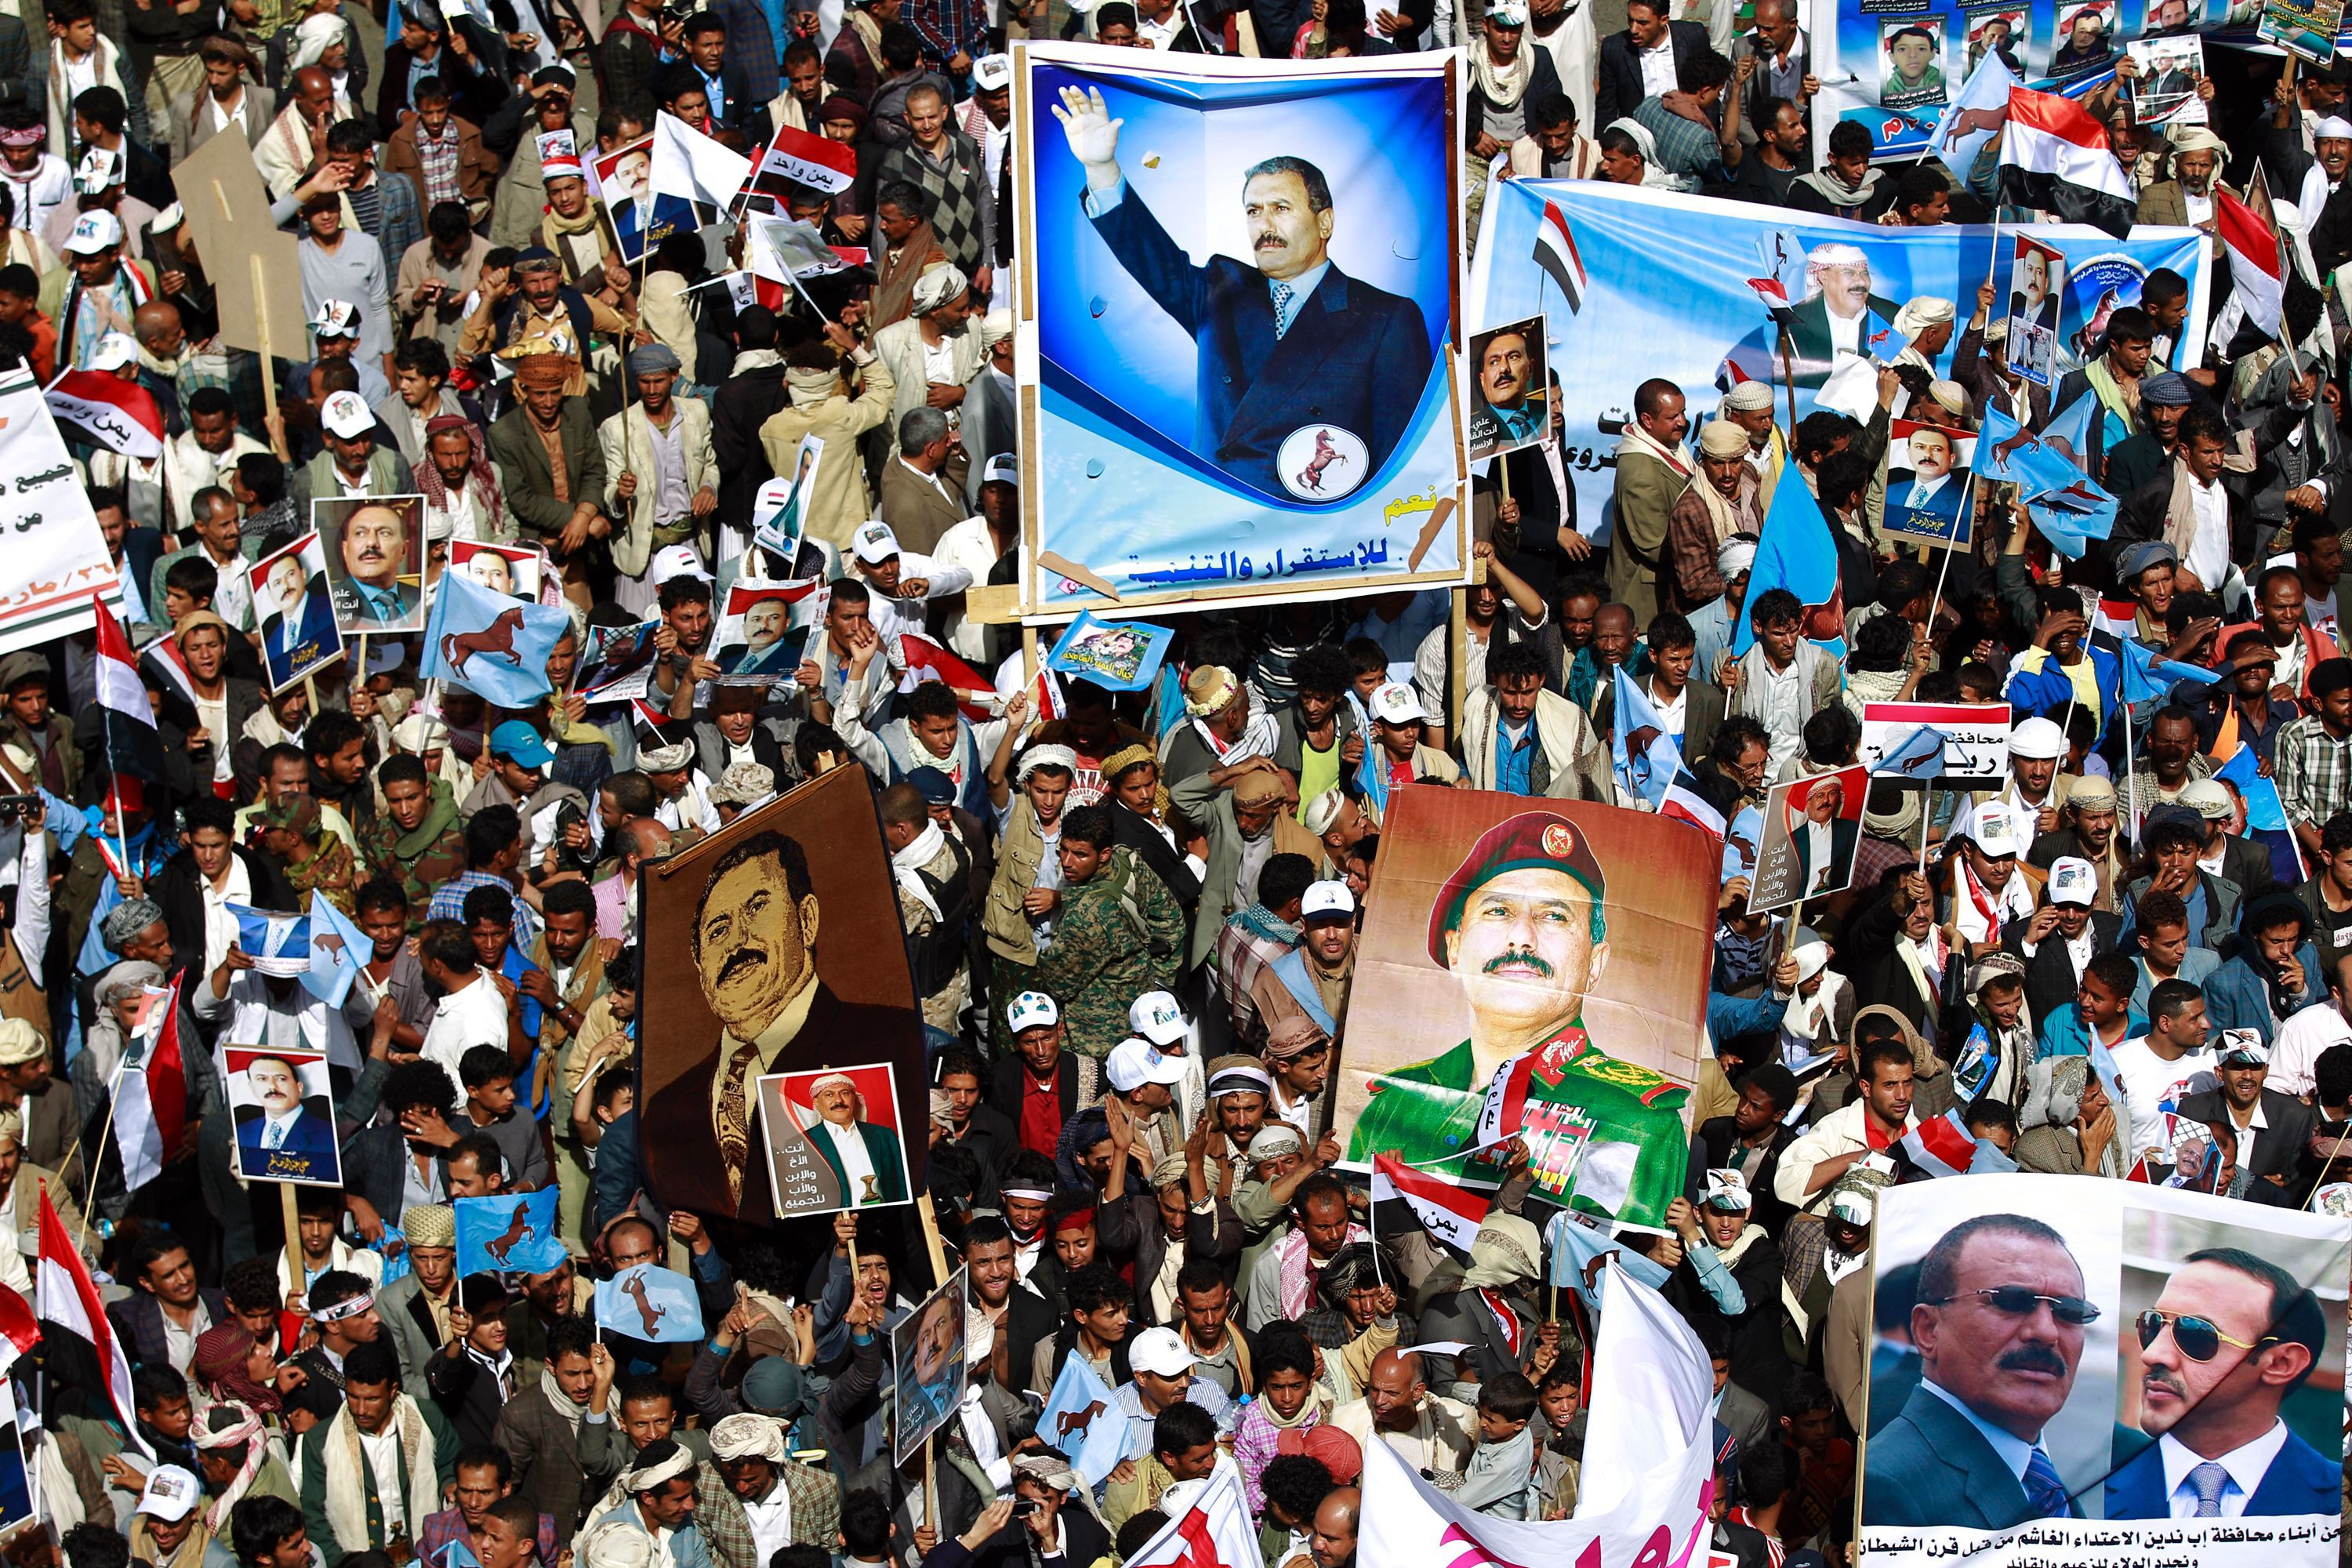 TOPSHOT - Yemenis hold placards bearing portraits of former president Ali Abdullah Saleh during a protest against the Saudi-led coalition, commemorating one year of the alliance's military campaign against insurgents on March 26, 2016 next to the Monument to the Unknown Soldier in the Yemeni capital Sanaa. The protest was called for by the General People's Congress, the party of rebel-allied former president Ali Abdullah Saleh, who appeared briefly at the rally, an AFP photographer said. The military intervention that began on March 26 last year has yet to deal a decisive blow to the Iran-backed rebels, who continue to control the capital and large parts of the country.   / AFP / MOHAMMED HUWAIS        (Photo credit should read MOHAMMED HUWAIS/AFP/Getty Images)